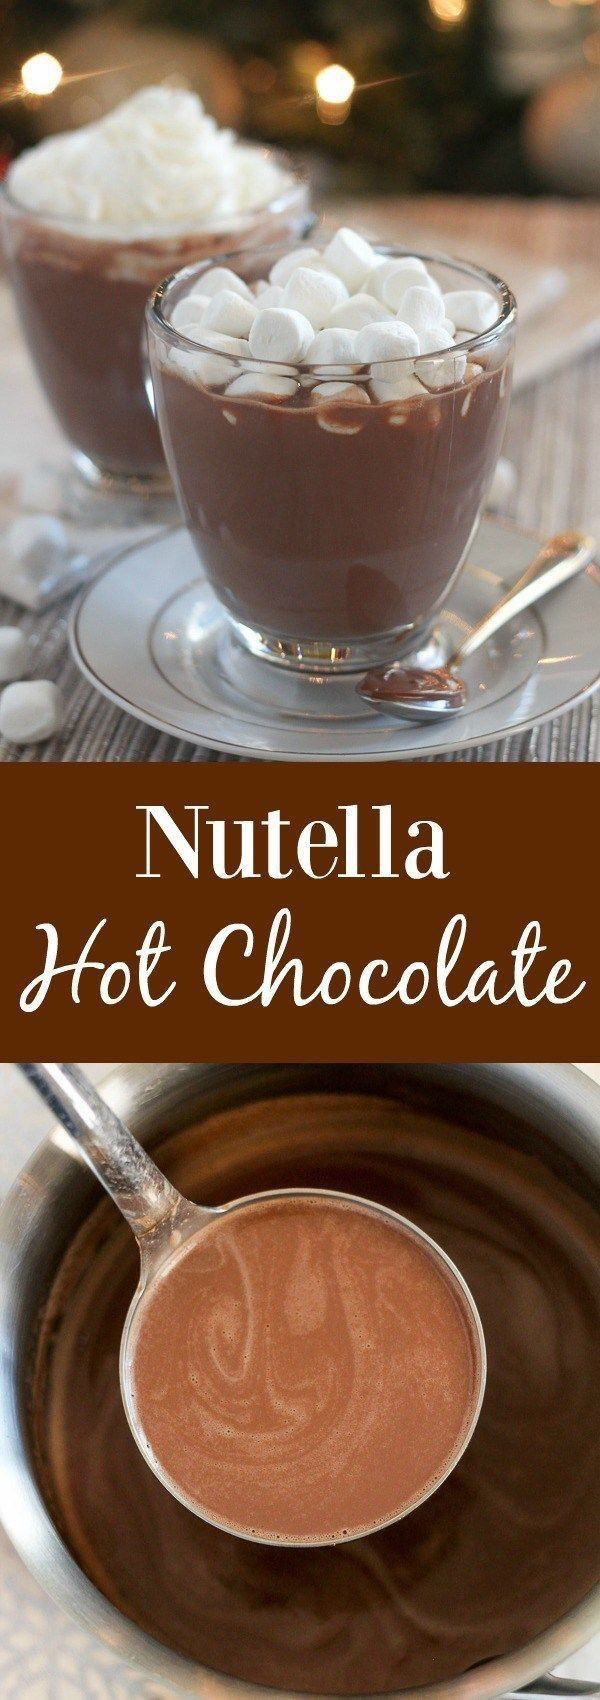 49 Hot Chocolate Recipes To Warm You Up This Winter